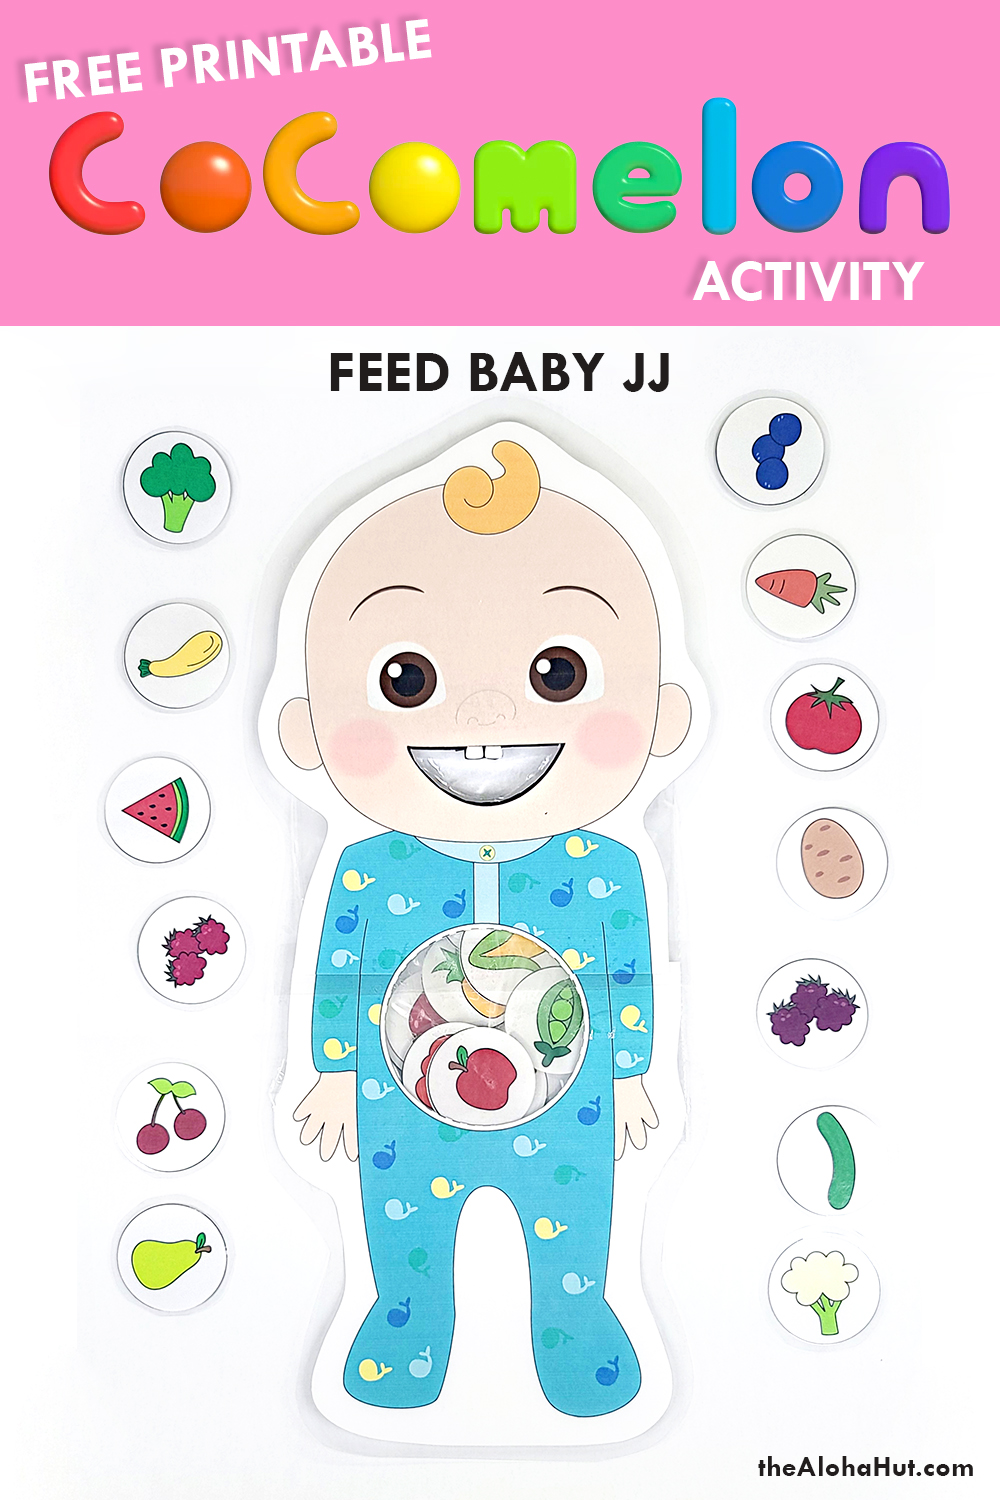 cocomelon feed baby JJ activity free printable by the Aloha Hut